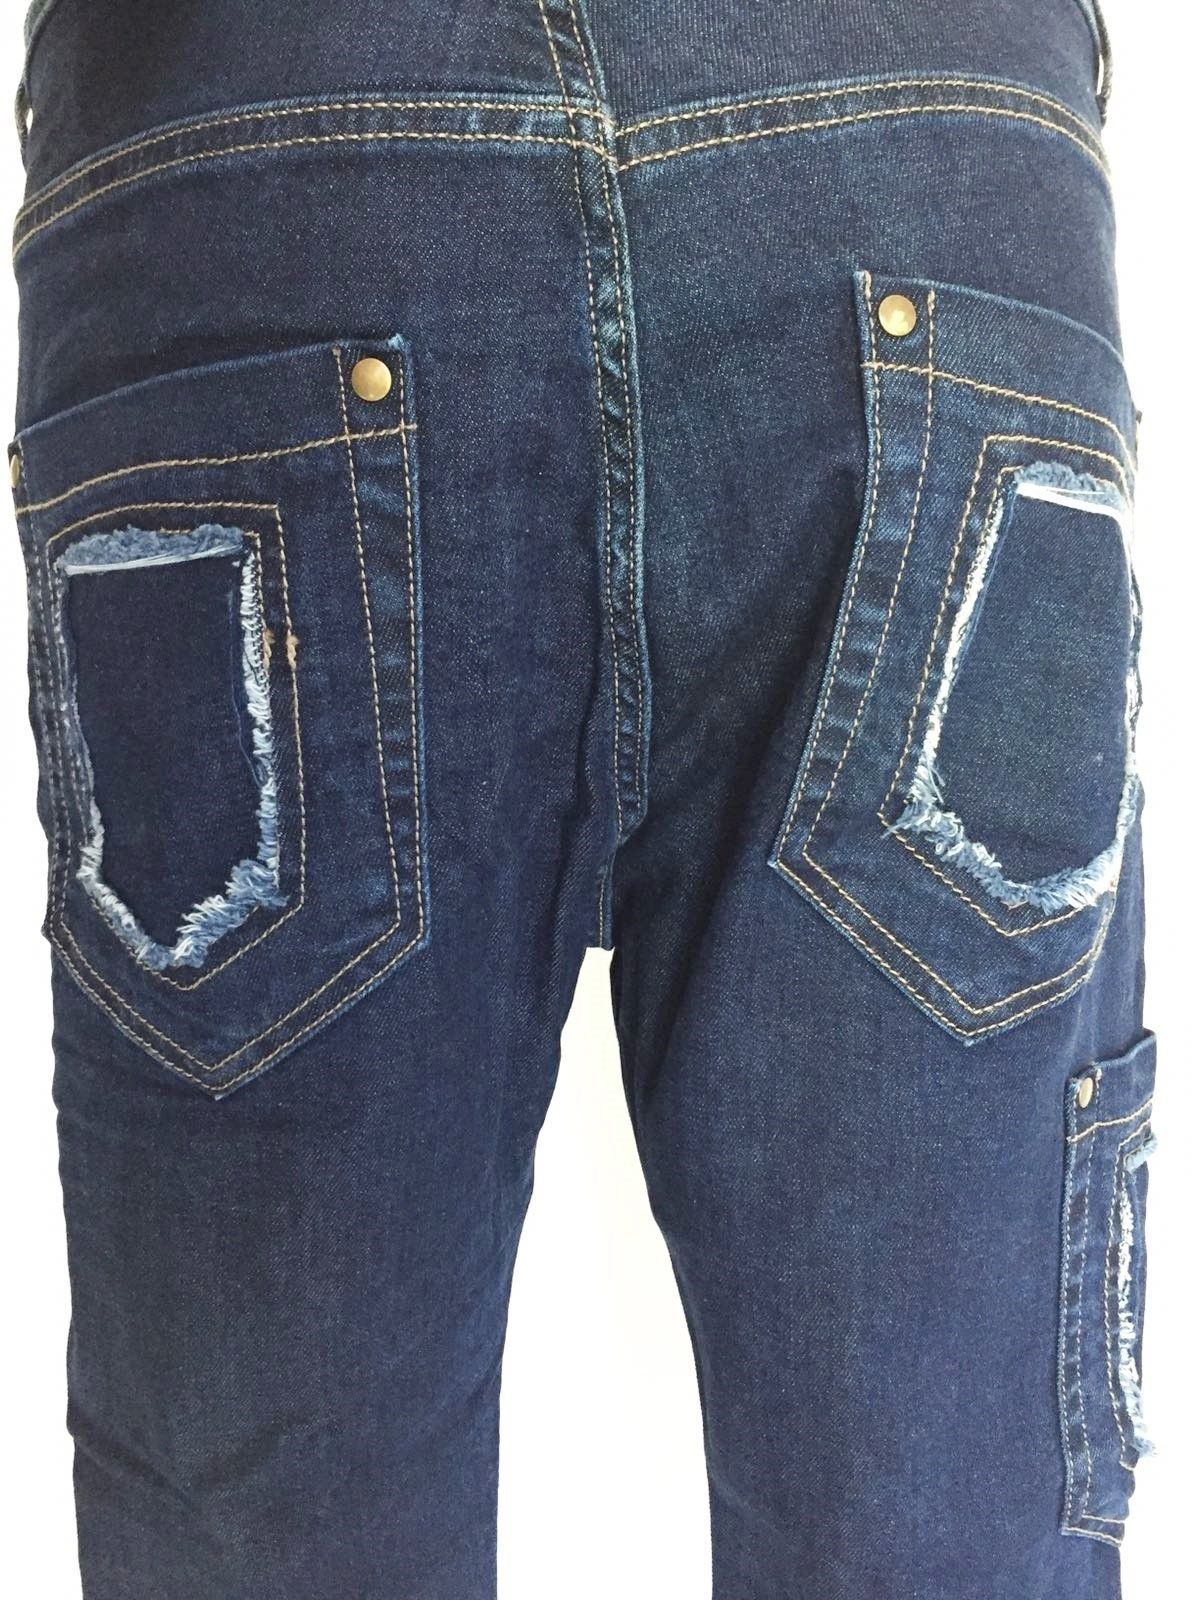 Sexy Woman Boyfriend Model Side Pocket Jeans Cod.P414900